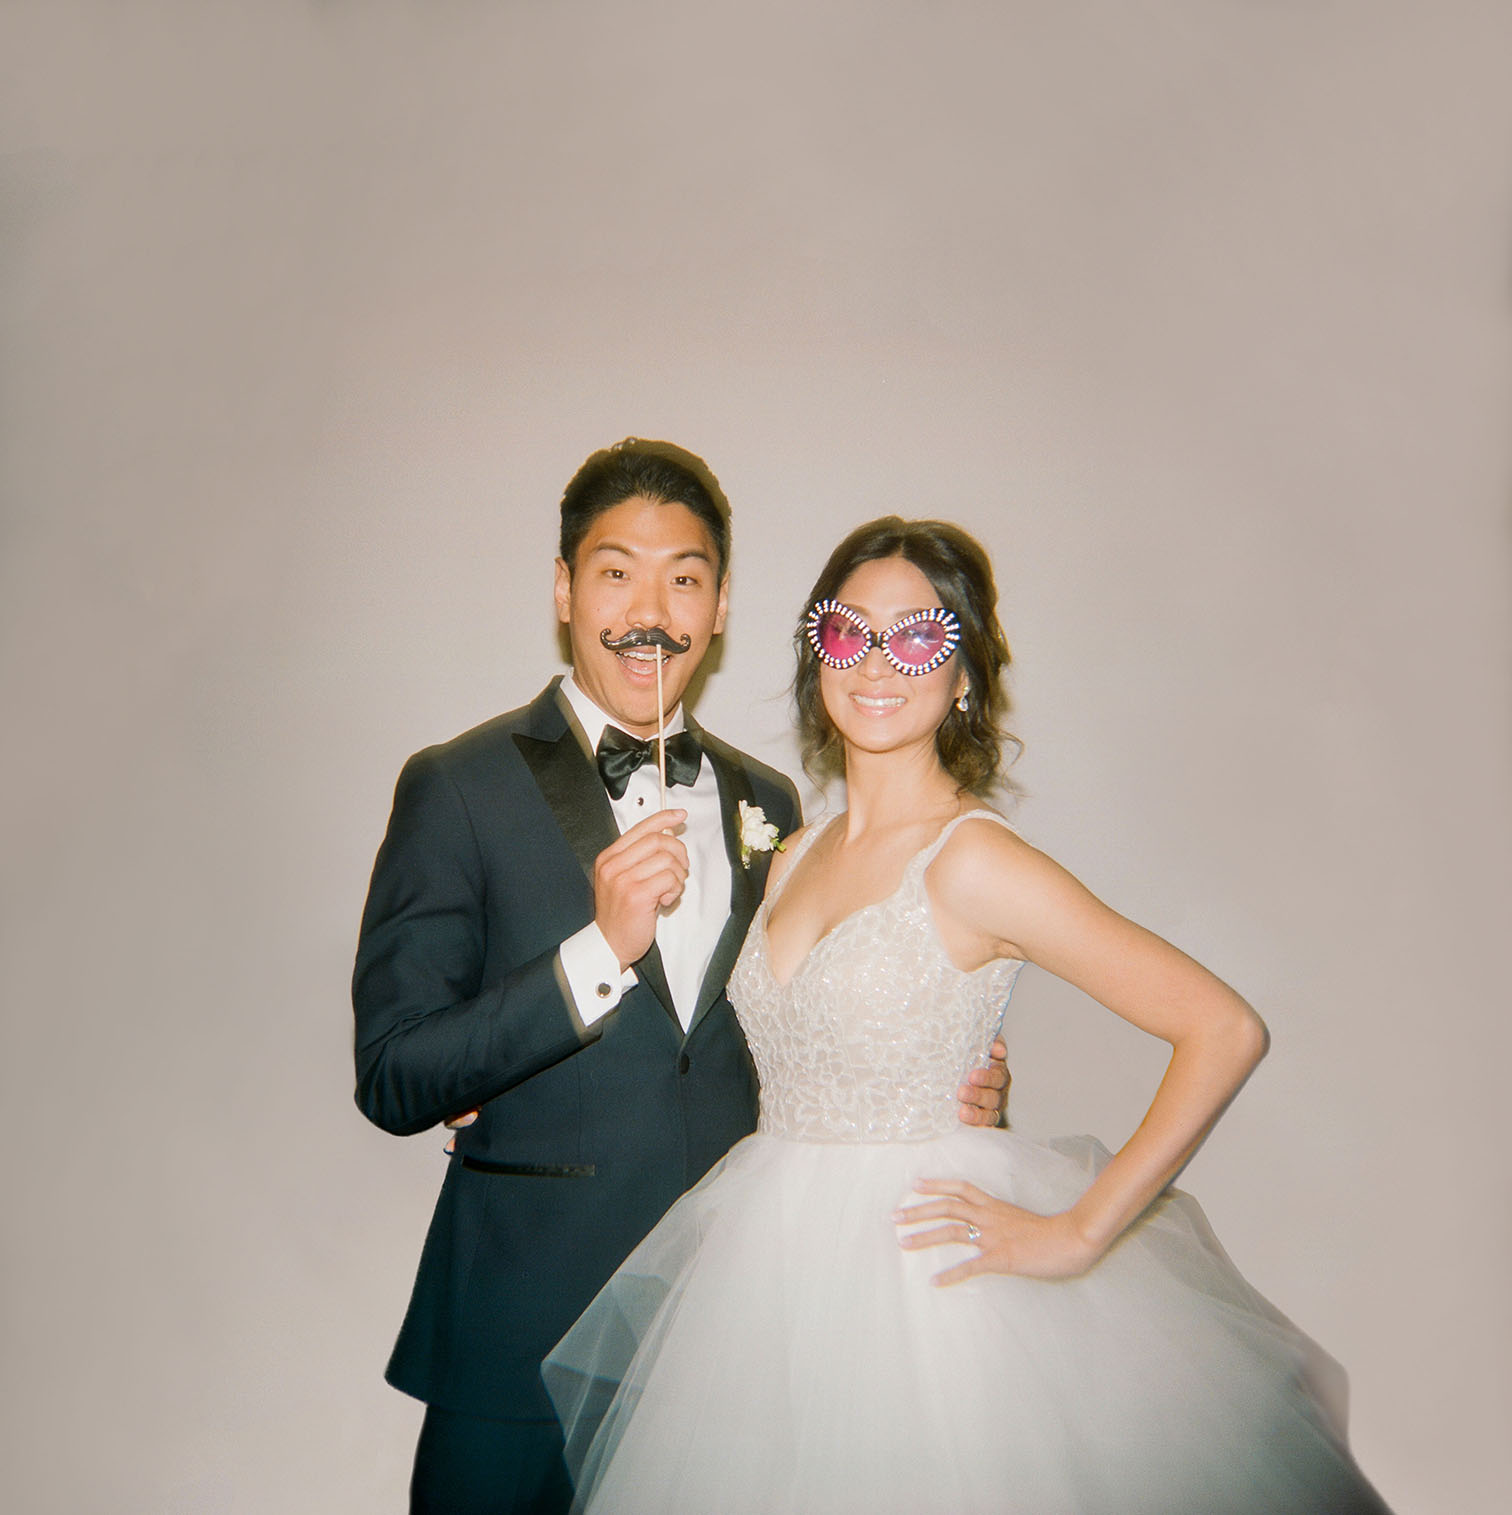 Denver Wedding Photographer, Winter Wedding, Denver Colorado, Photo-Booth Portraits